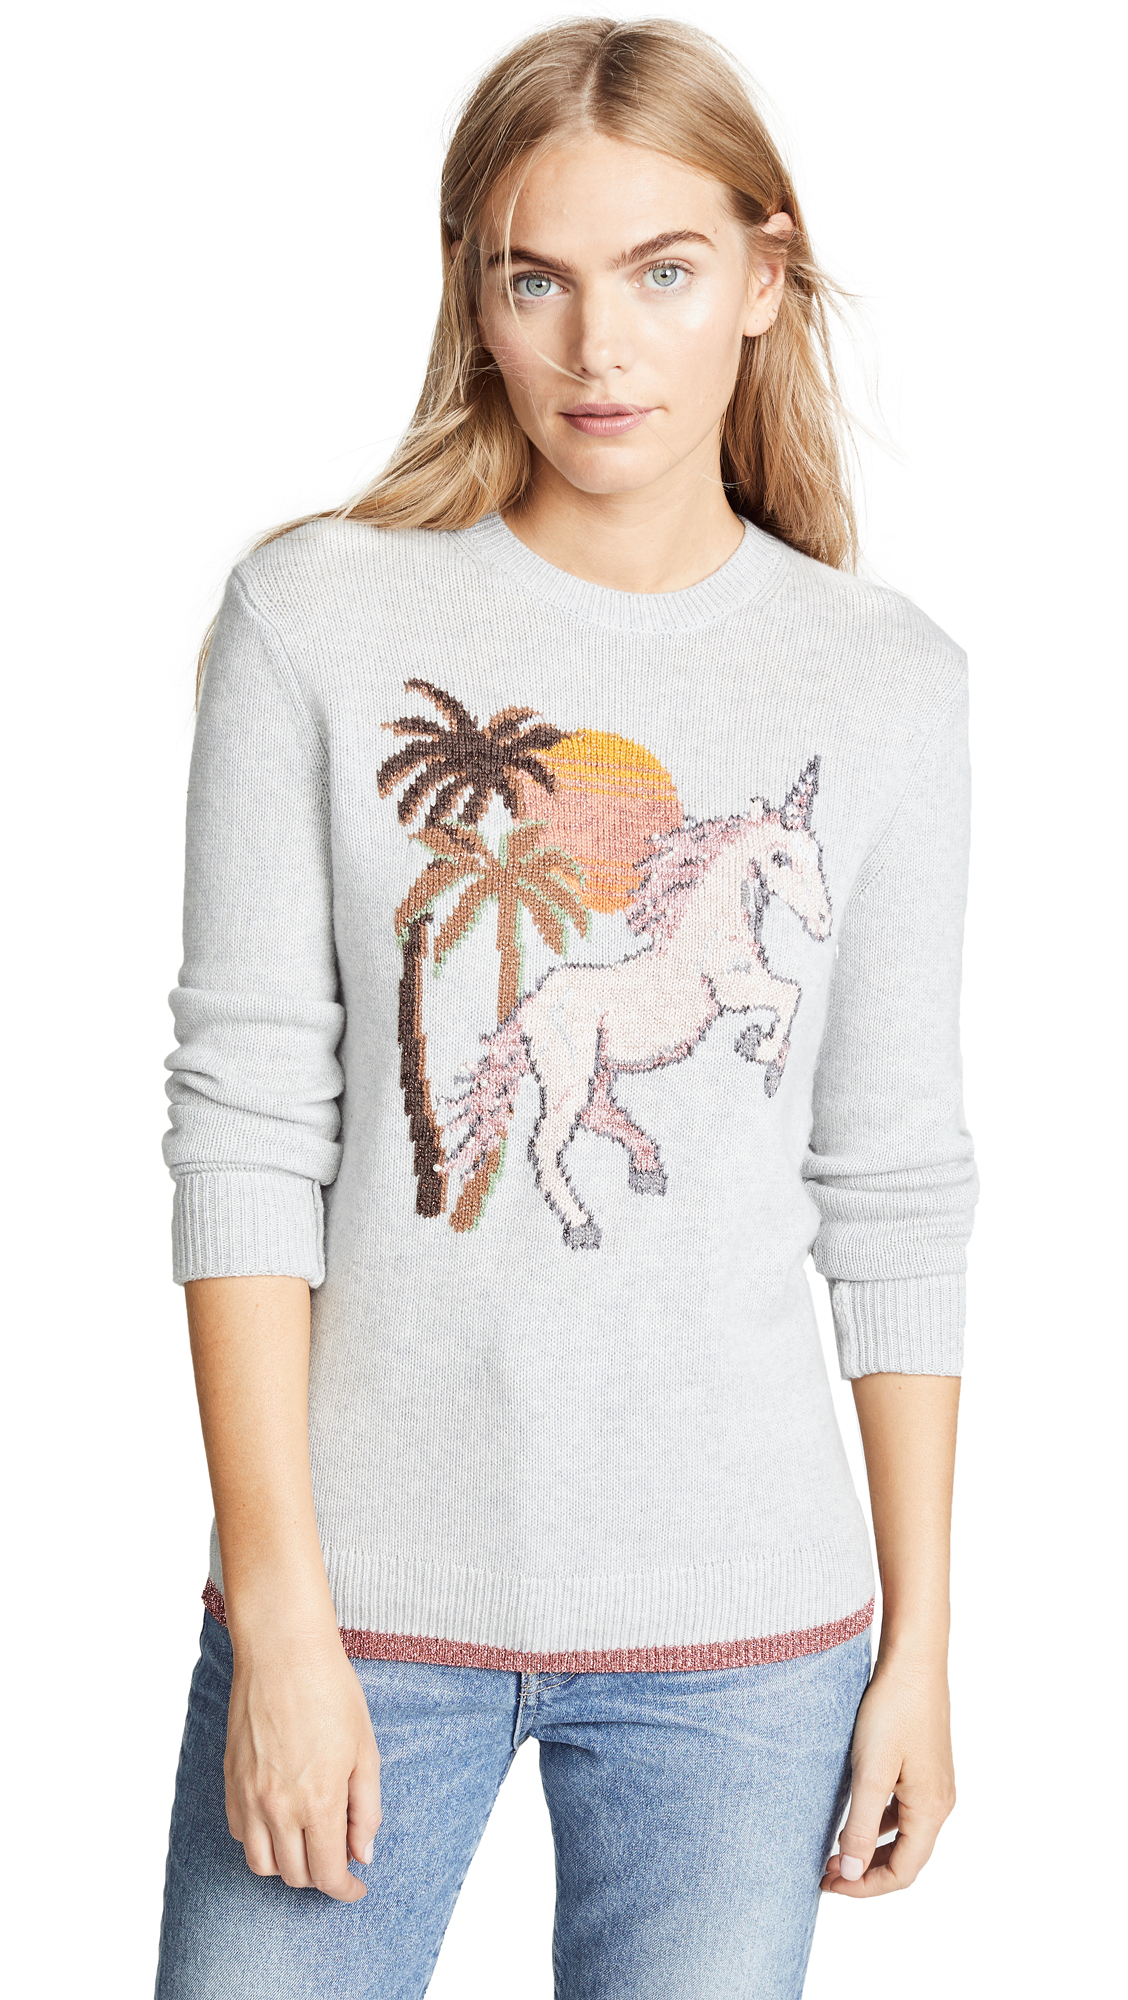 Uni Intarsia Wool-Cashmere Sweater in Grey from COACH